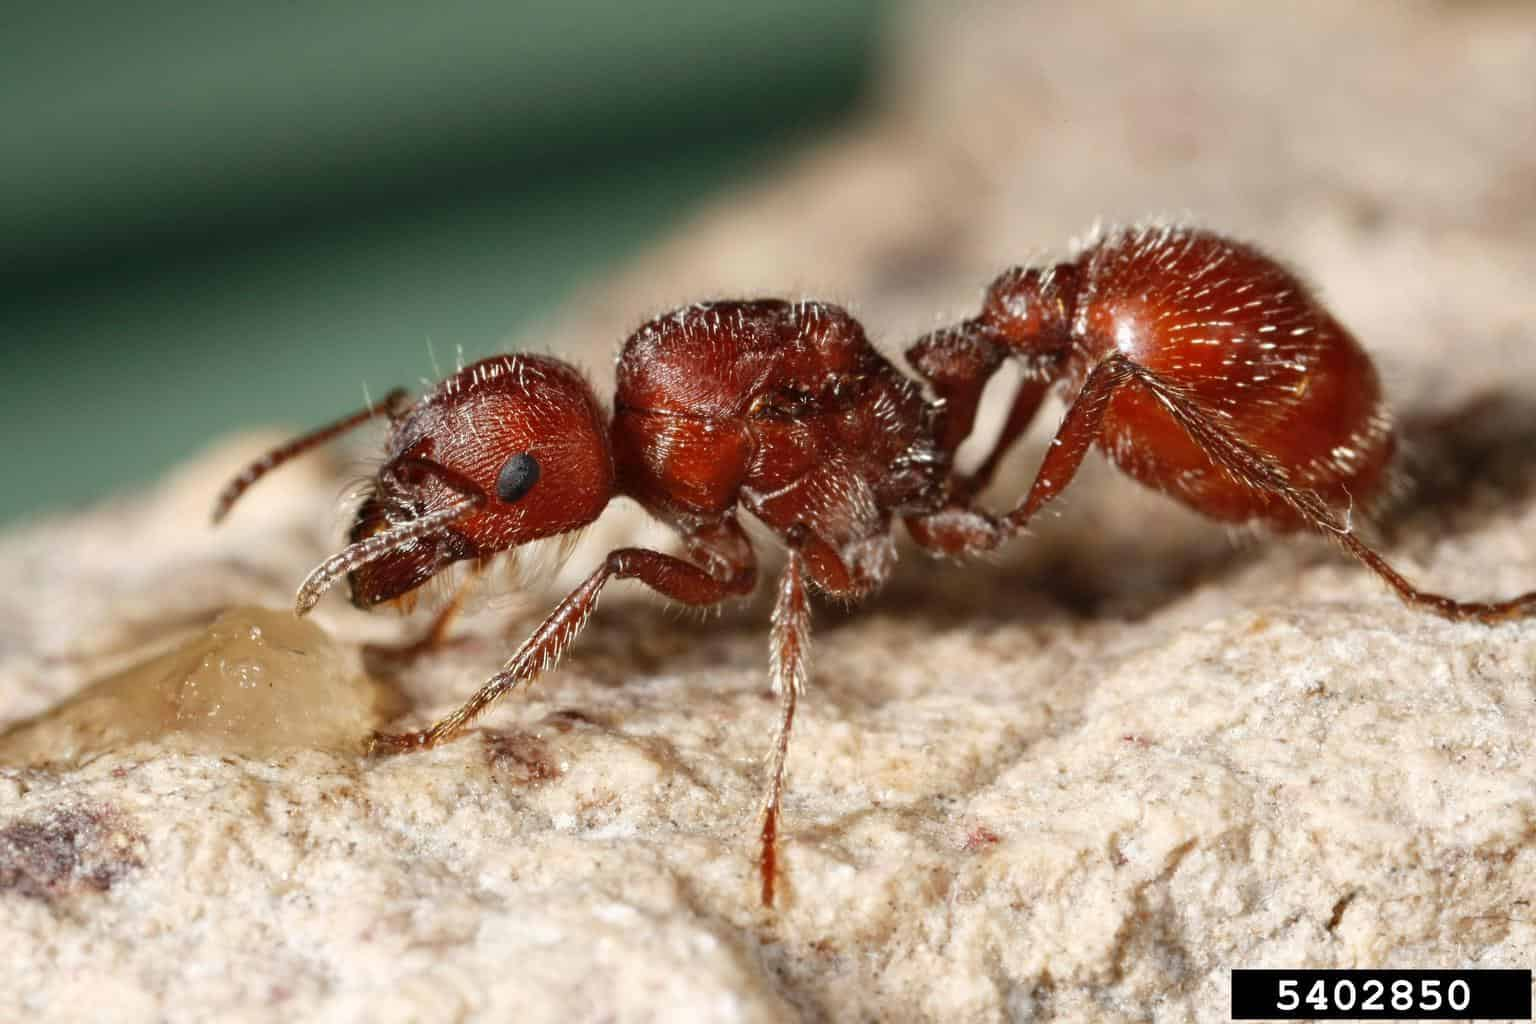 Part I Delve Into The Life Of The Red Harvester Ant Arizona Raft Adventures